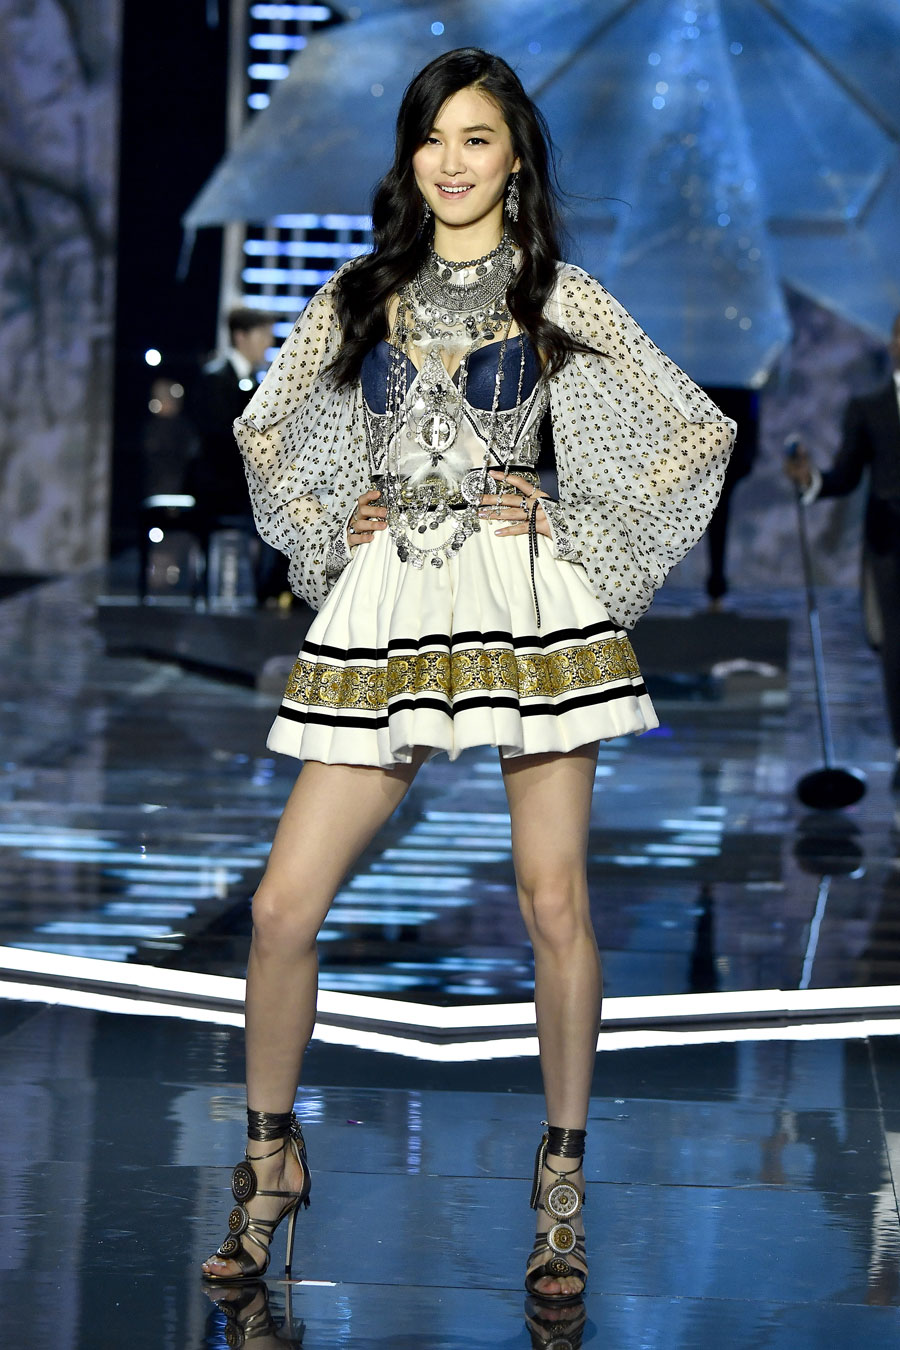 Estelle Chen at the Victoria's Secret Fashion Show in Shanghai